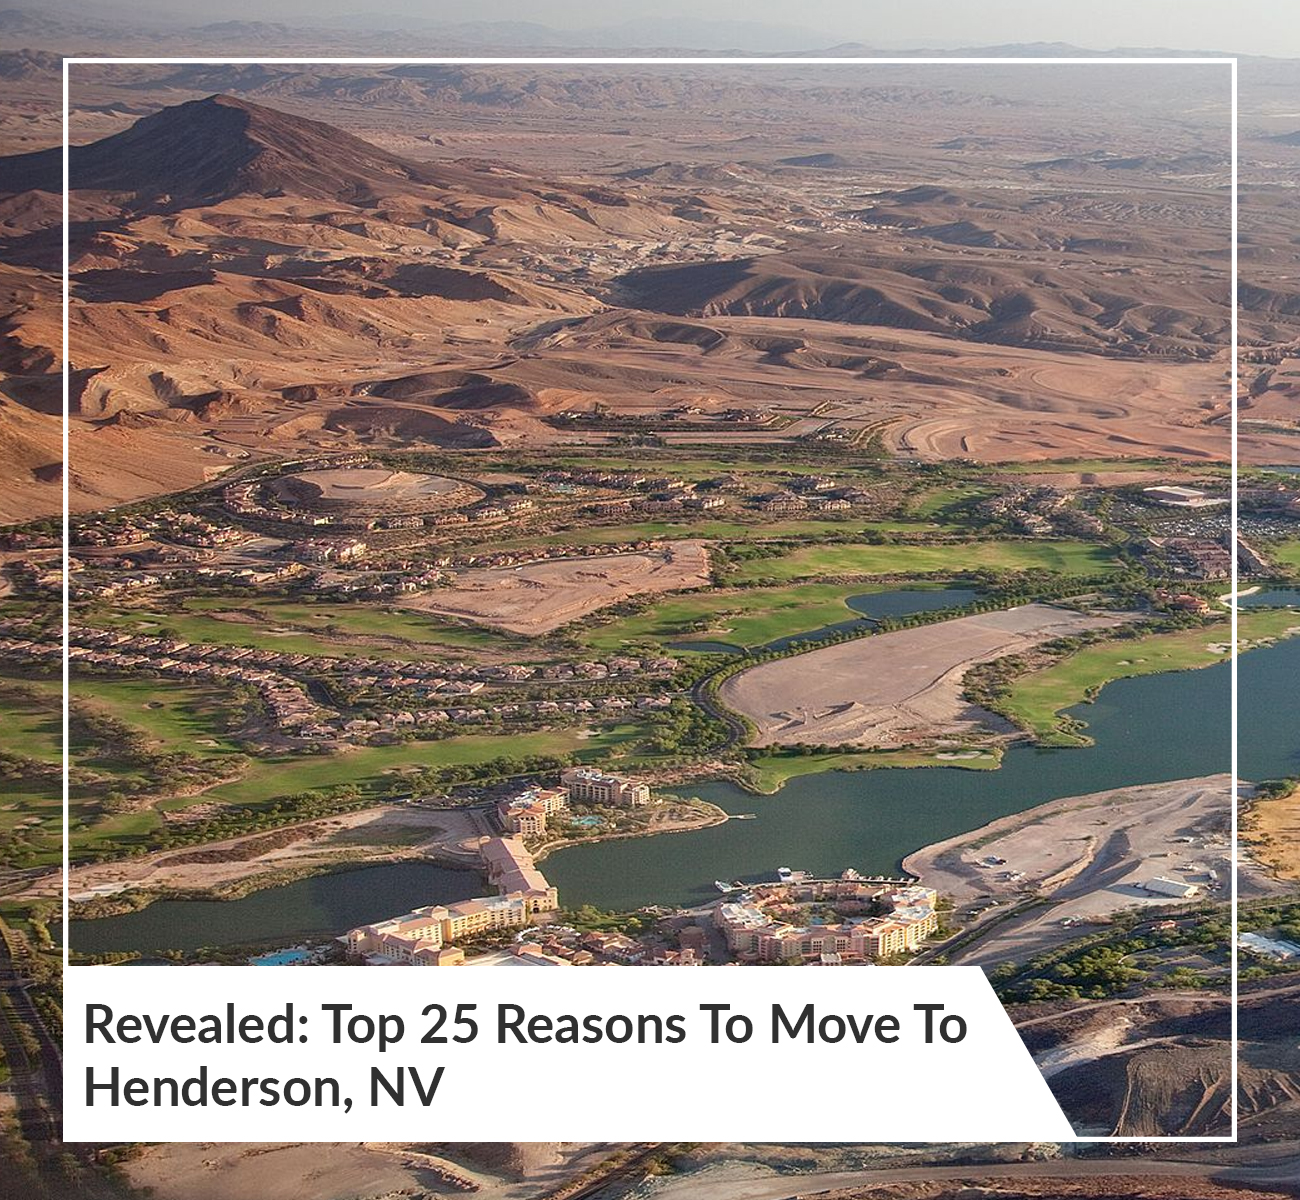 Reasons To Move To Henderson